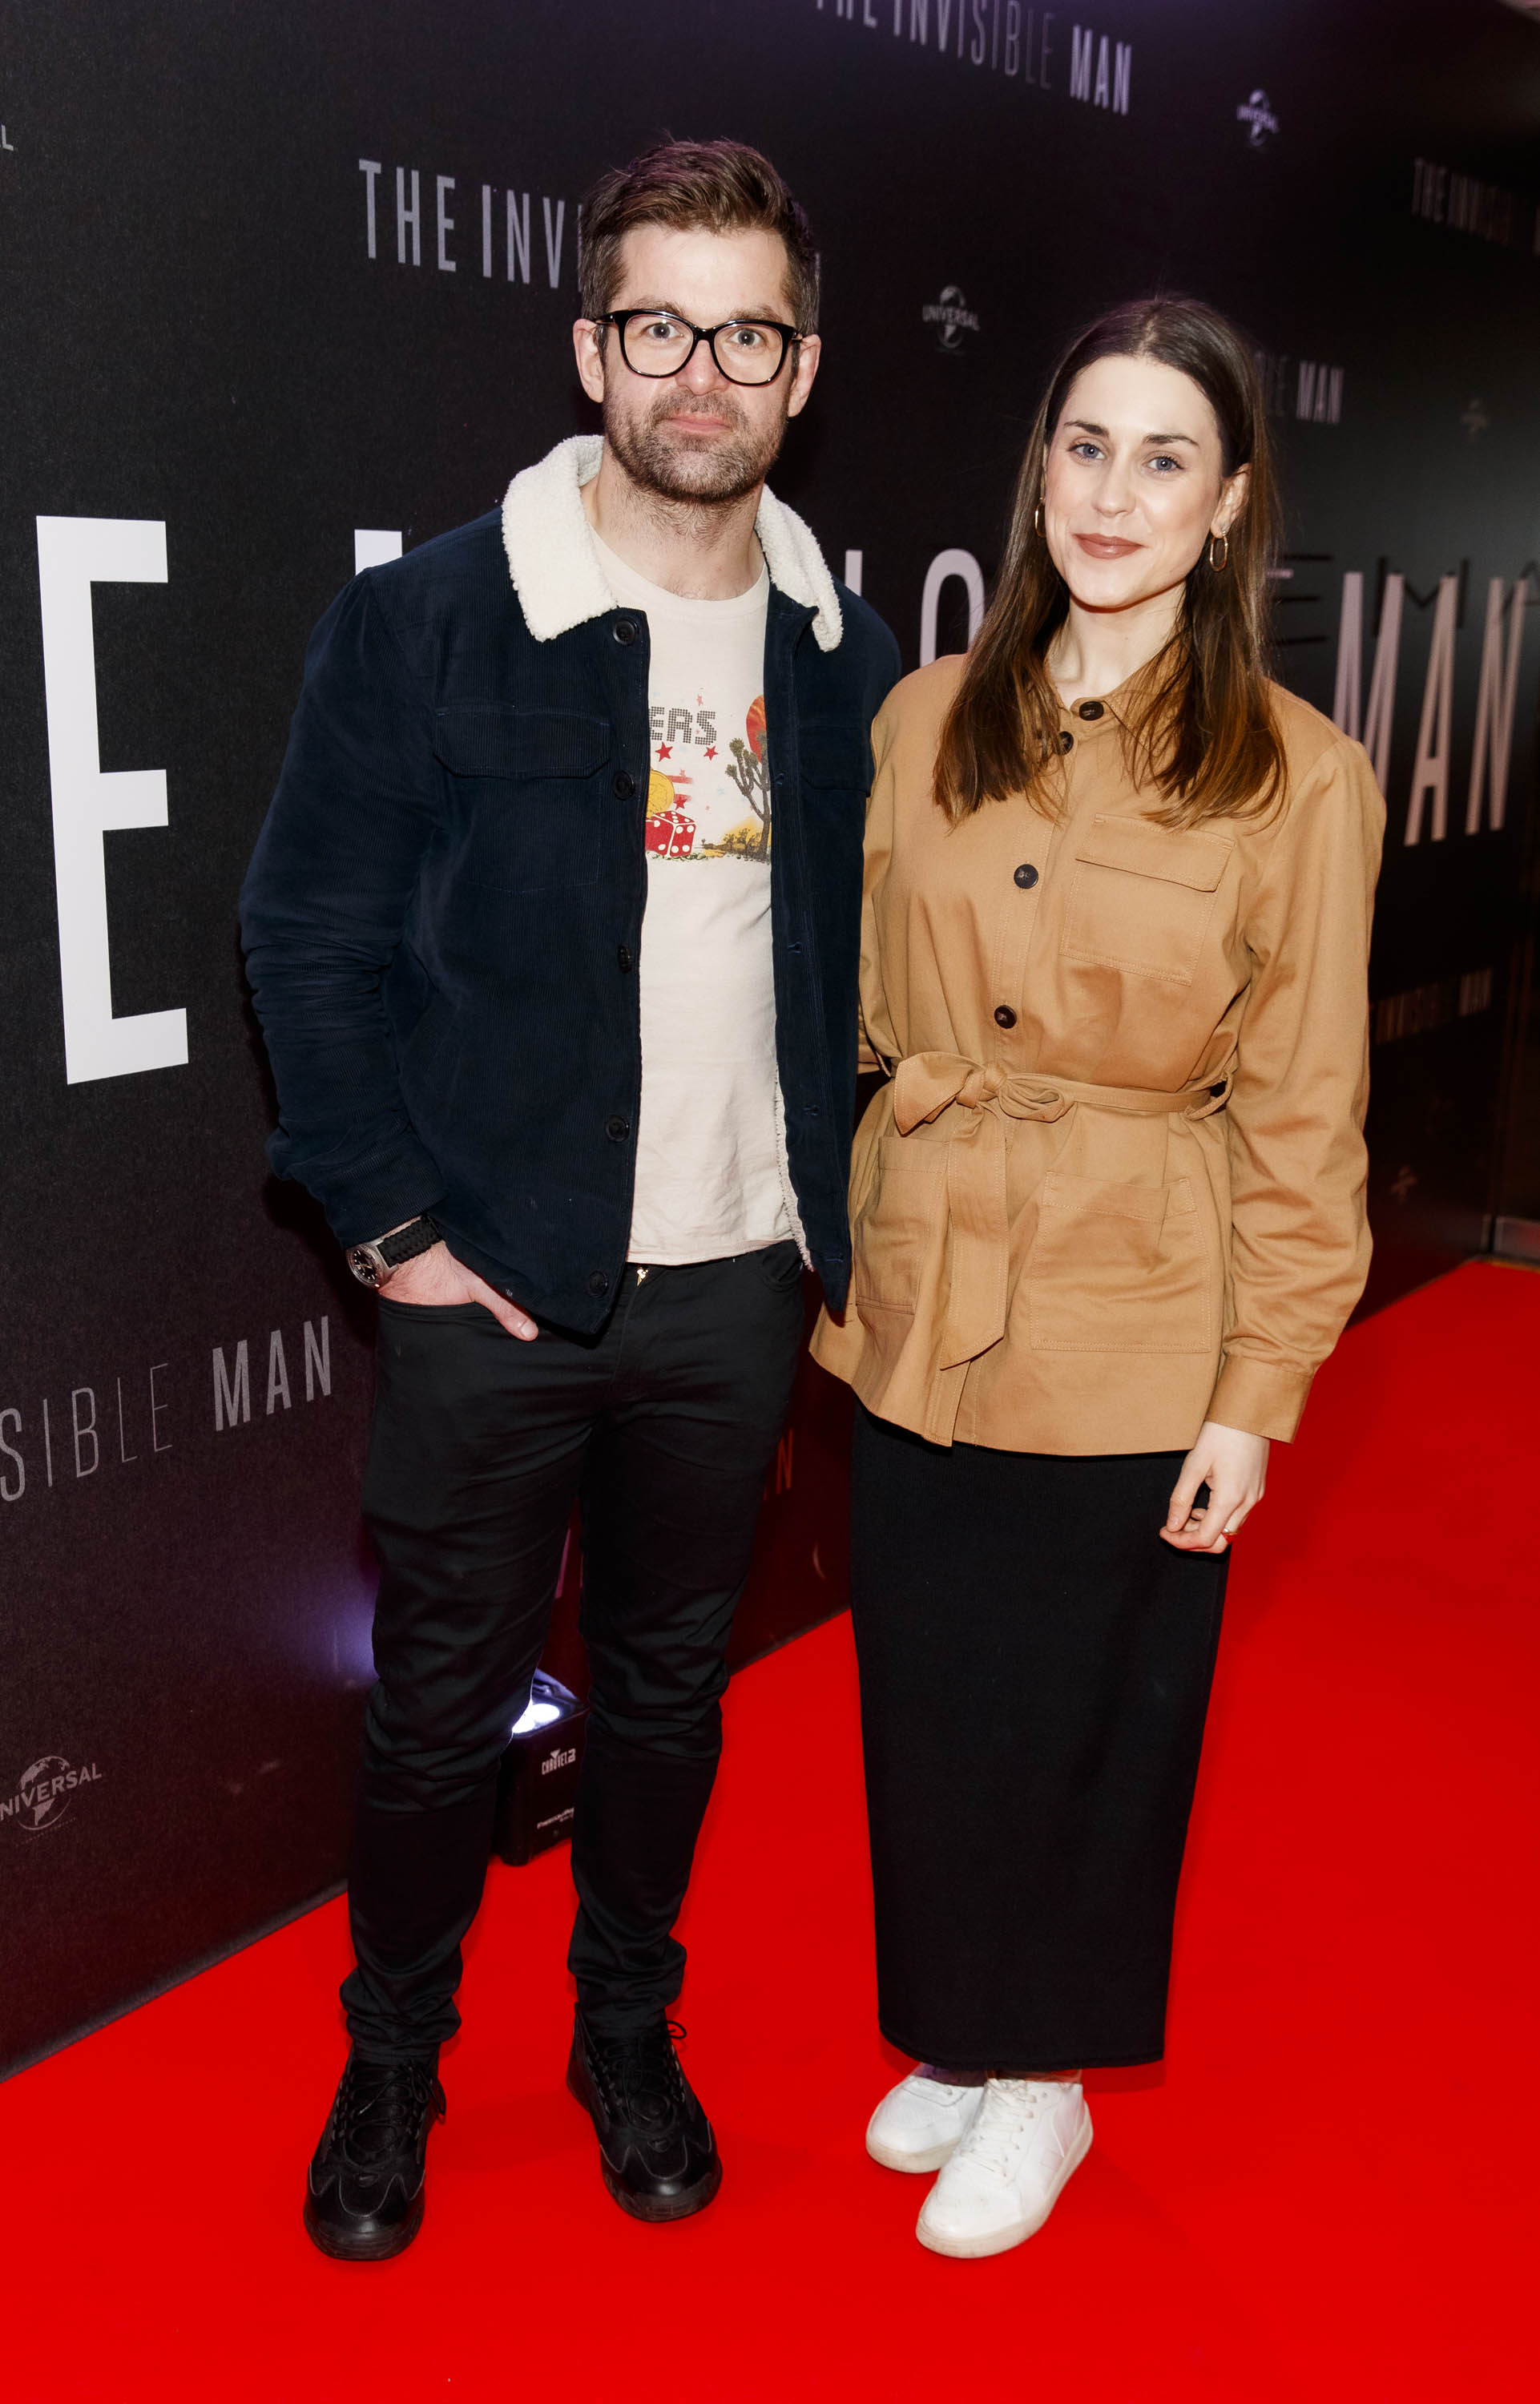 Mike Sheridan and Jo Linihan pictured at a special preview screening of The Invisible Man at Light House Cinema, Dublin. Picture: Andres Poveda.